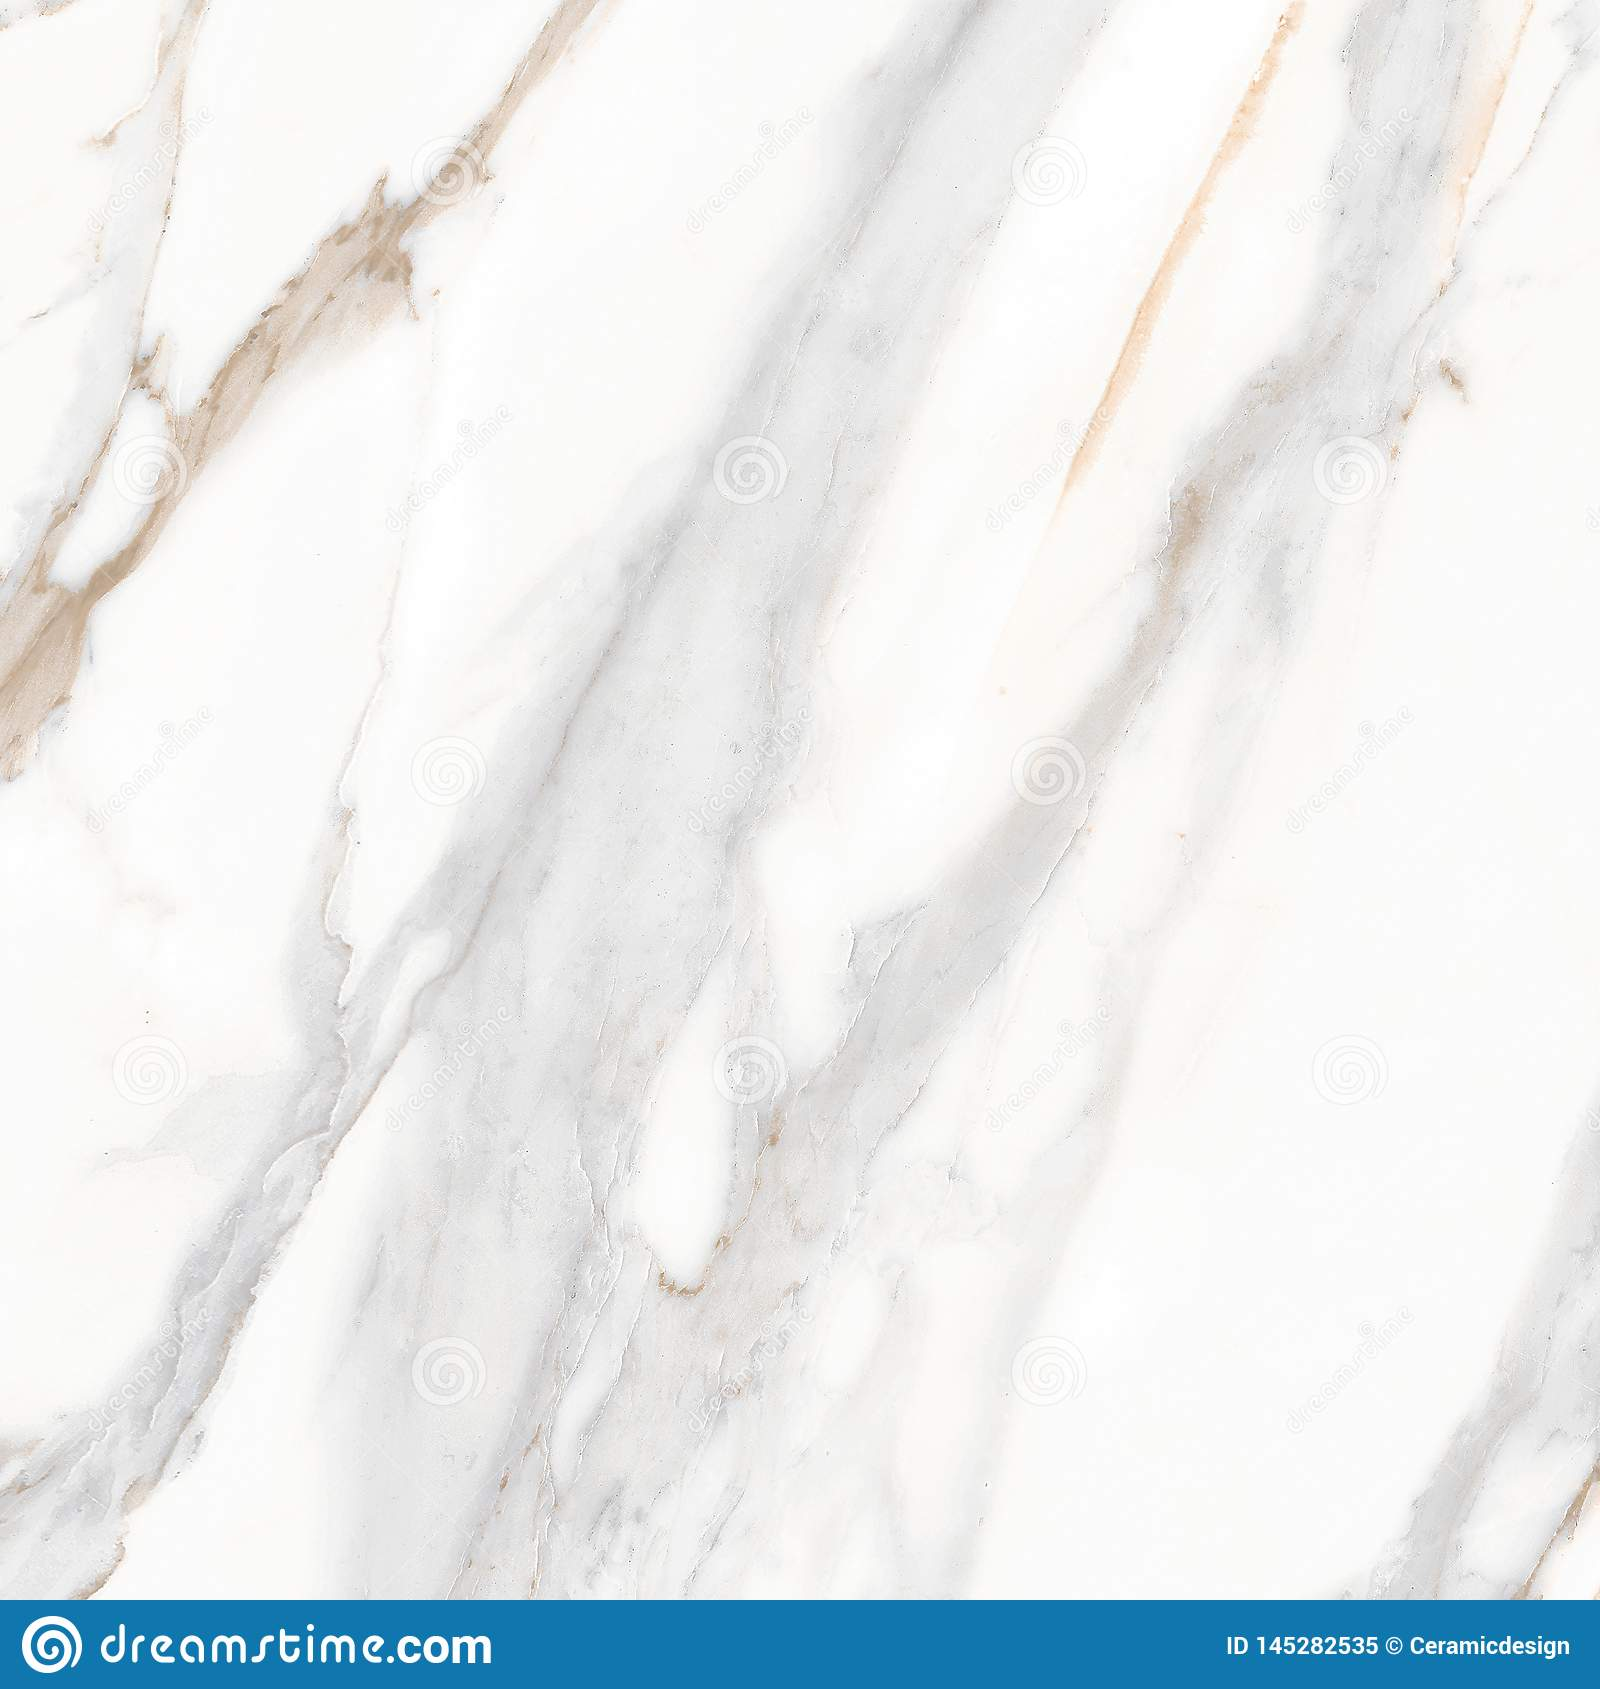 Stone Marble Floor Tile Texture Background Stock Image Image Of Rough Ceramic 145282535